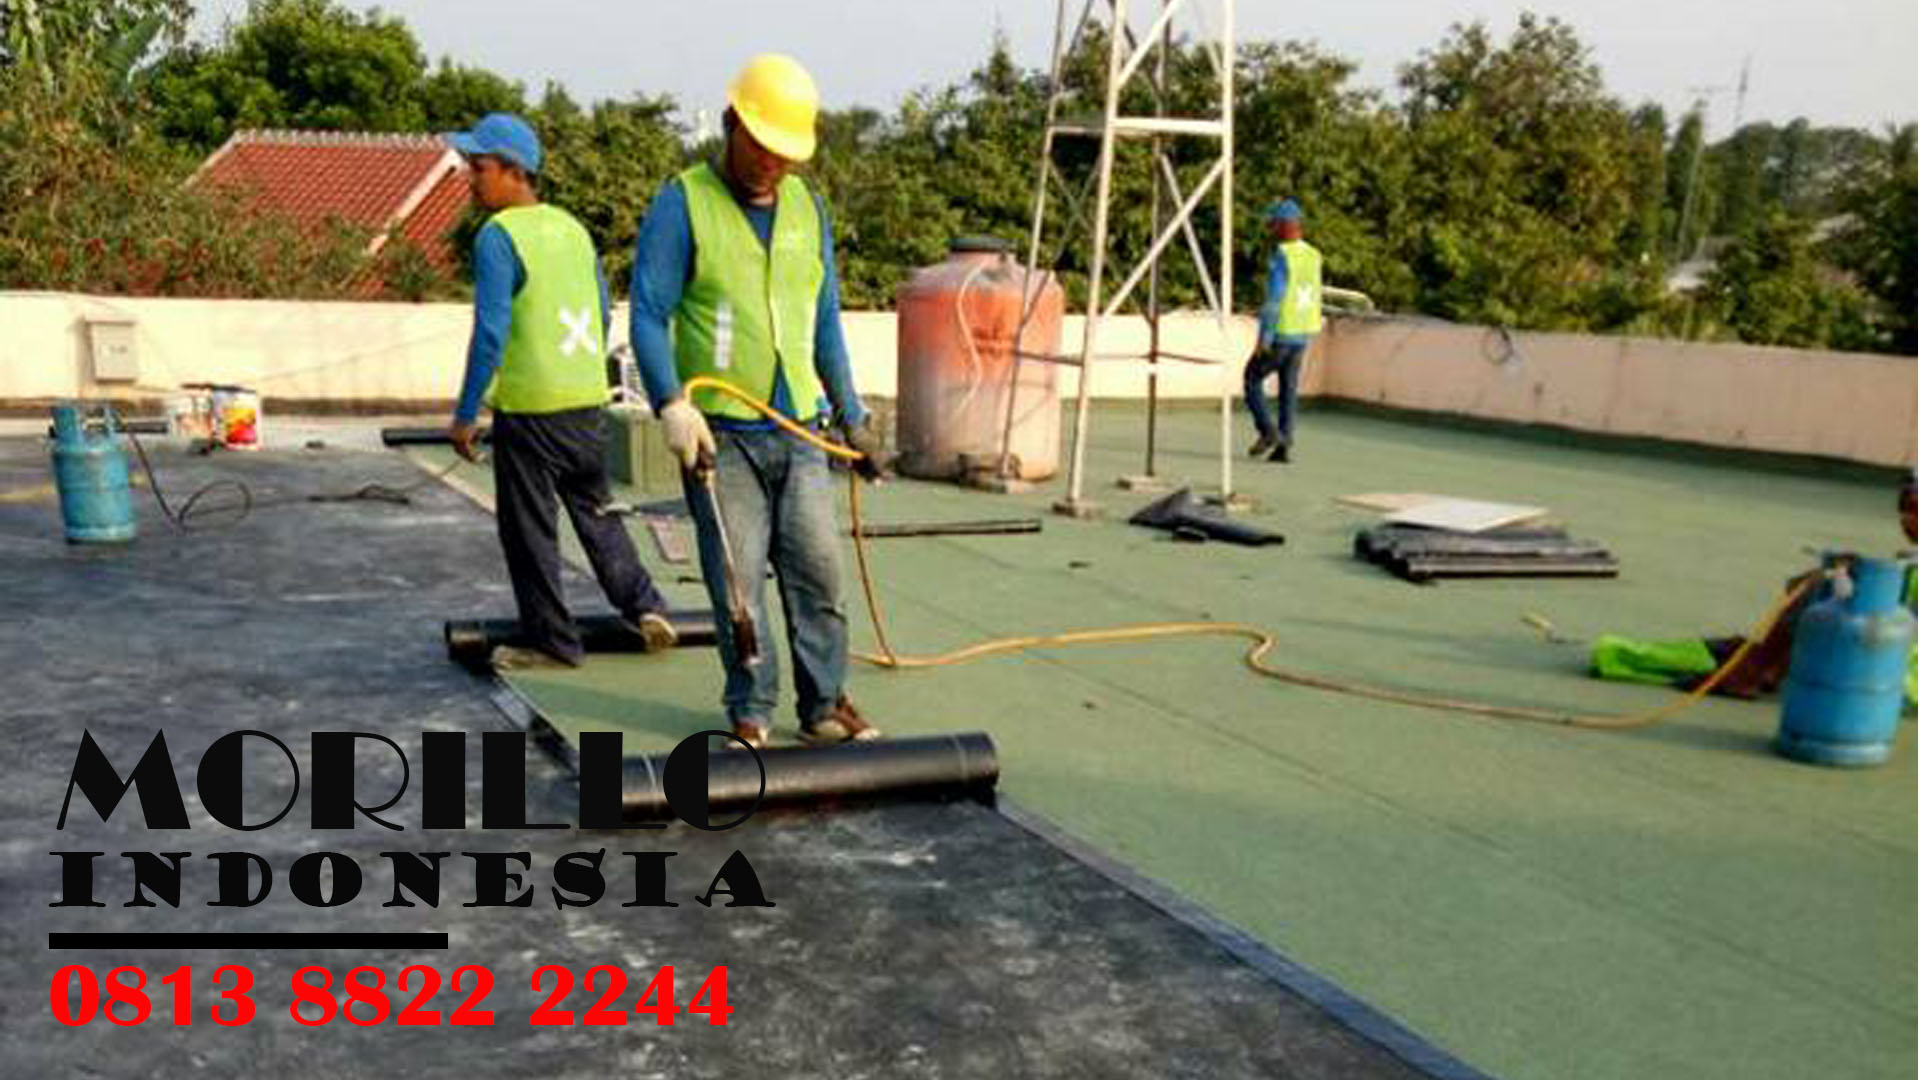 MEMBRAN WATERPROOFING ANTI BOCOR di KENDARI HUBUNGI : 0813 88222244